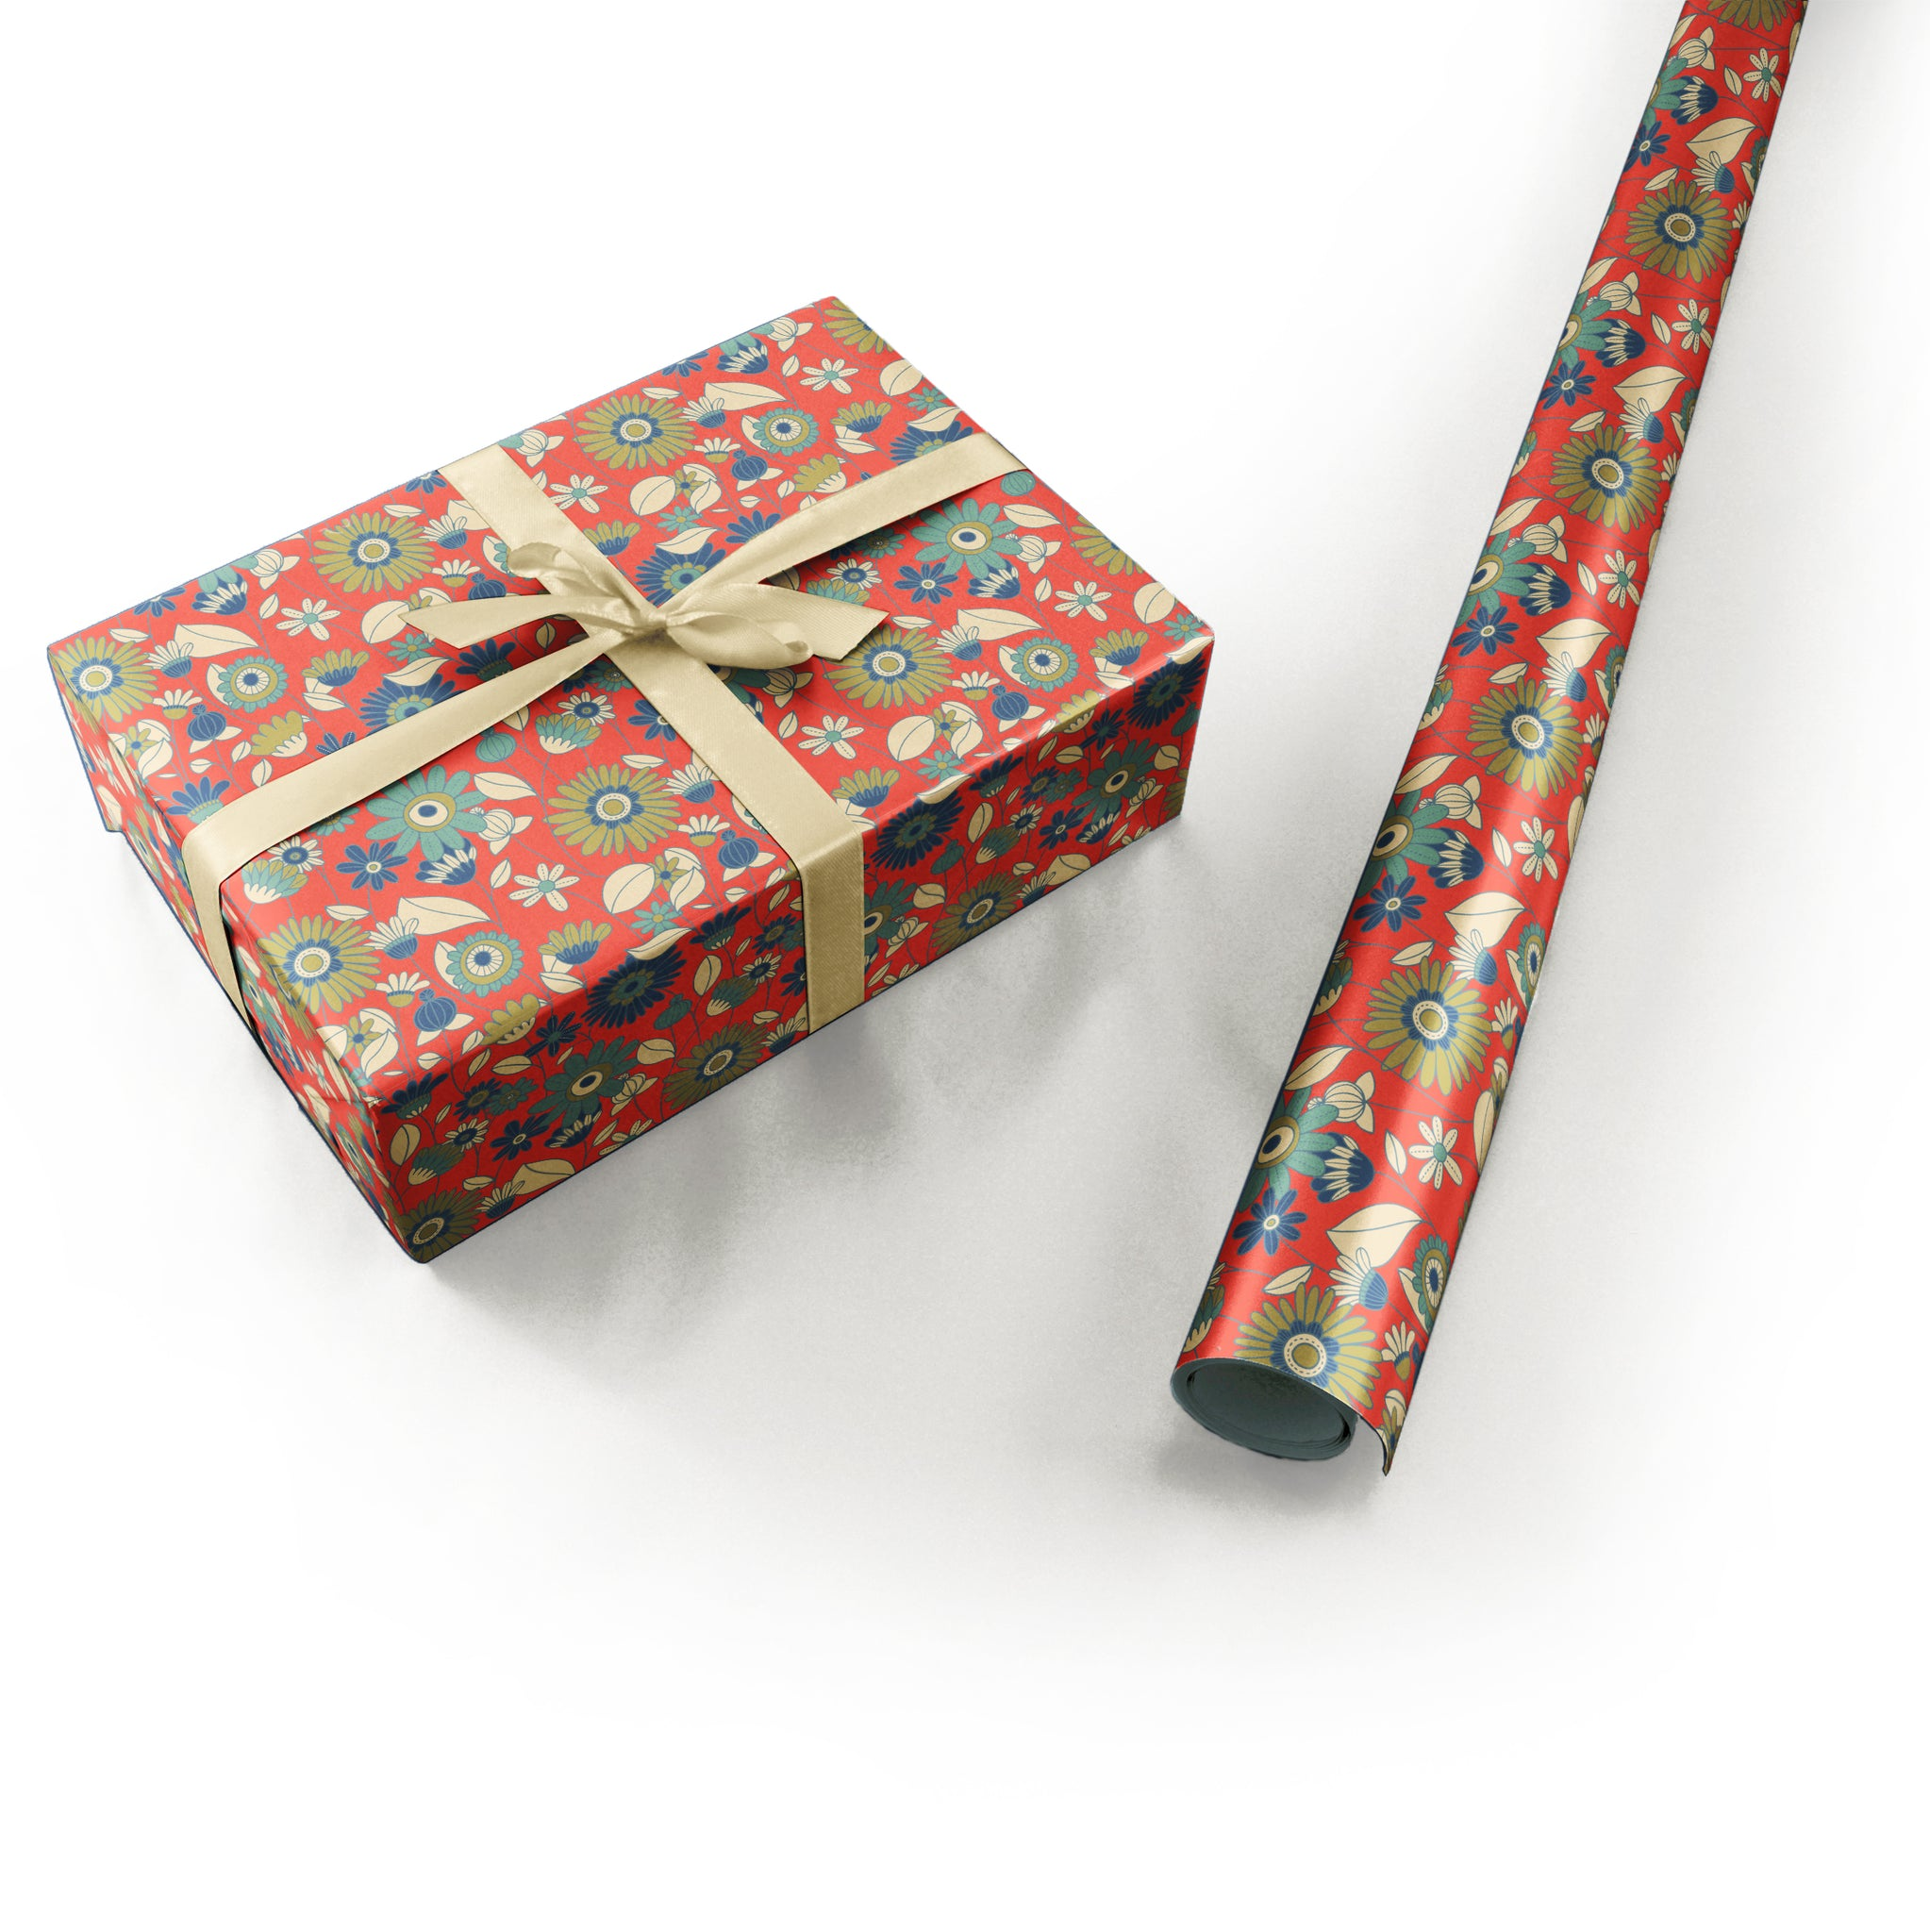 "Wrapping Paper - Laura Varsky Roll (2 sheets) - 27"" x 39"" (Red Orange)"